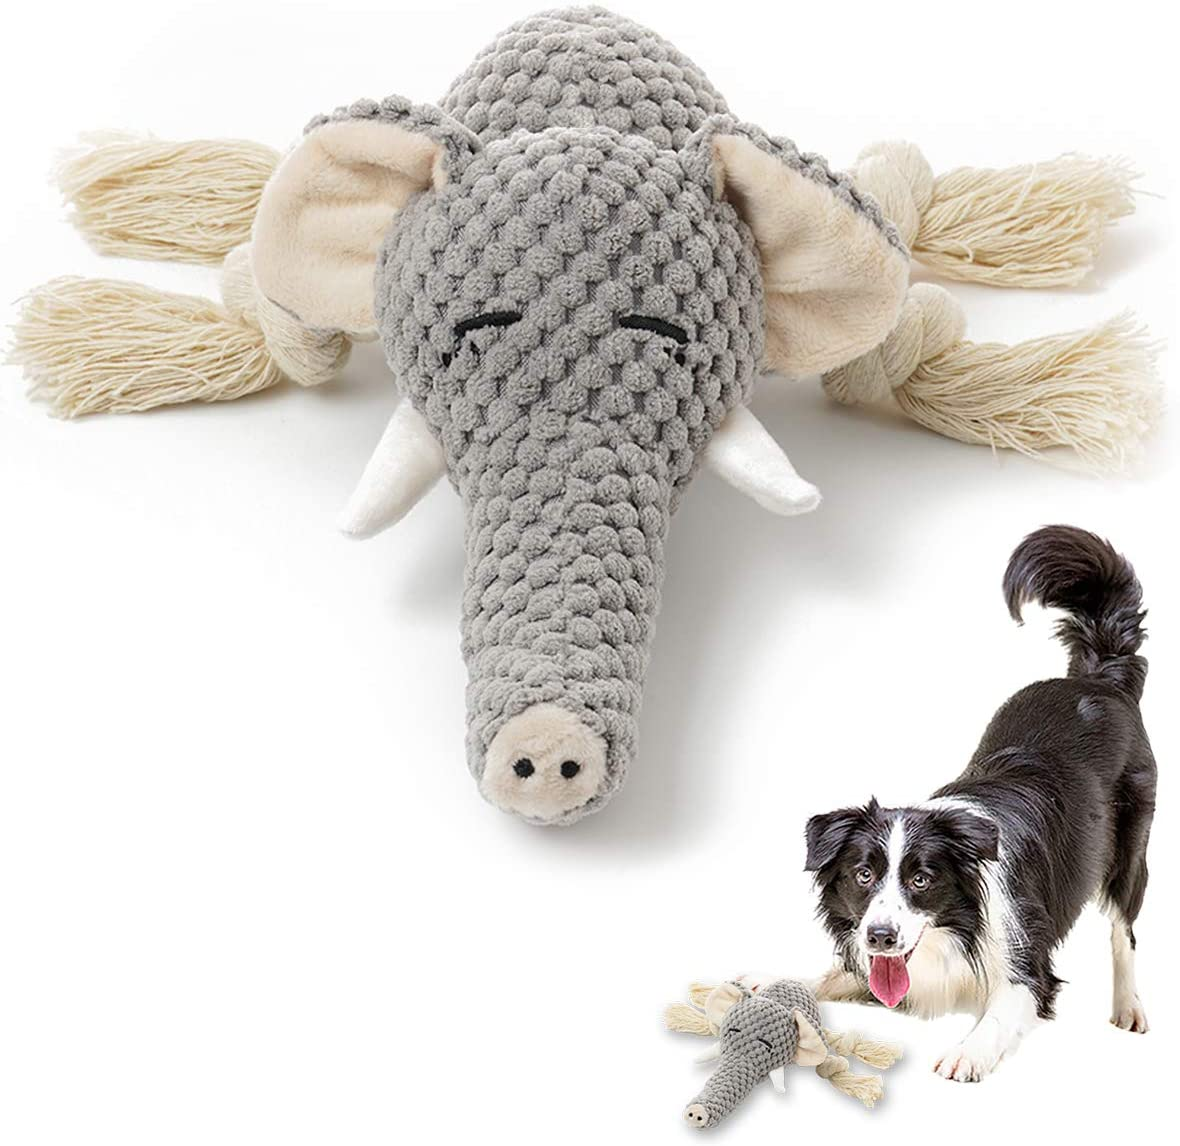 Kitchen & Dining : Plush Dog Toy, Squeaky Interactive Puppy Dog Toys with Crinkle Paper, Durable Chew Toys for Small and Medium Dogs with Elephant Shape :